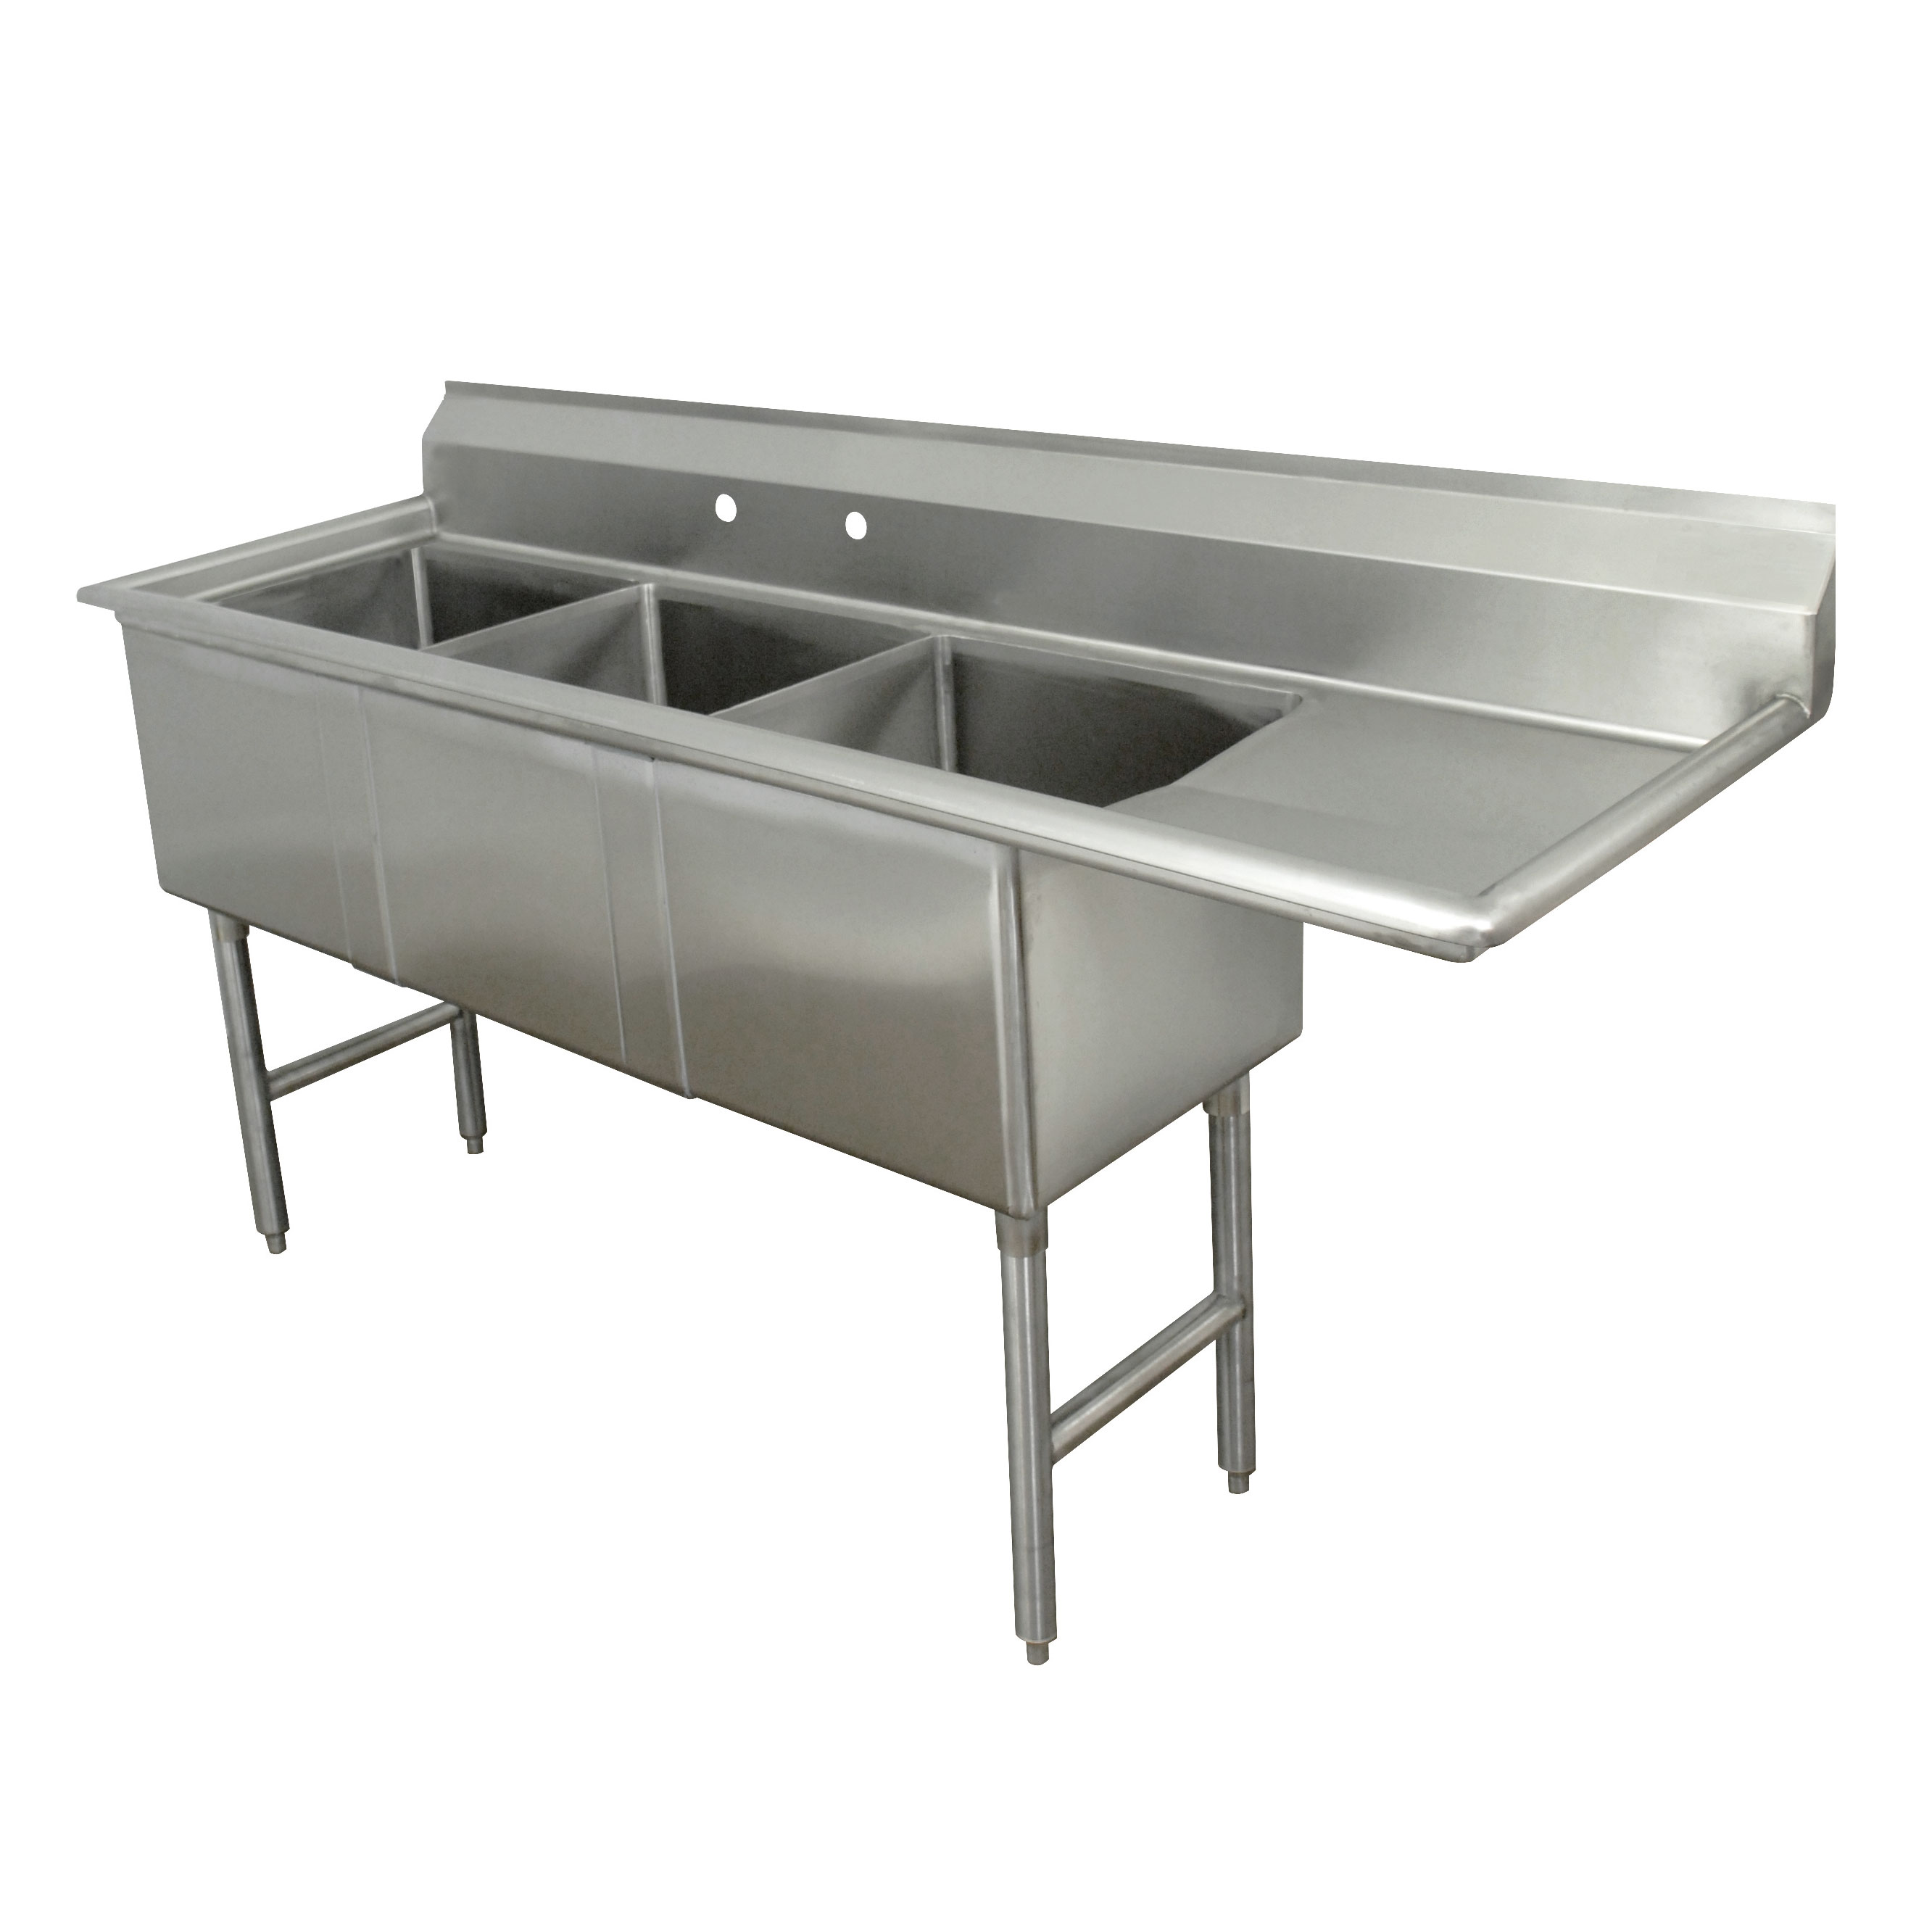 Advance Tabco FC-3-2424-18R sink, (3) three compartment